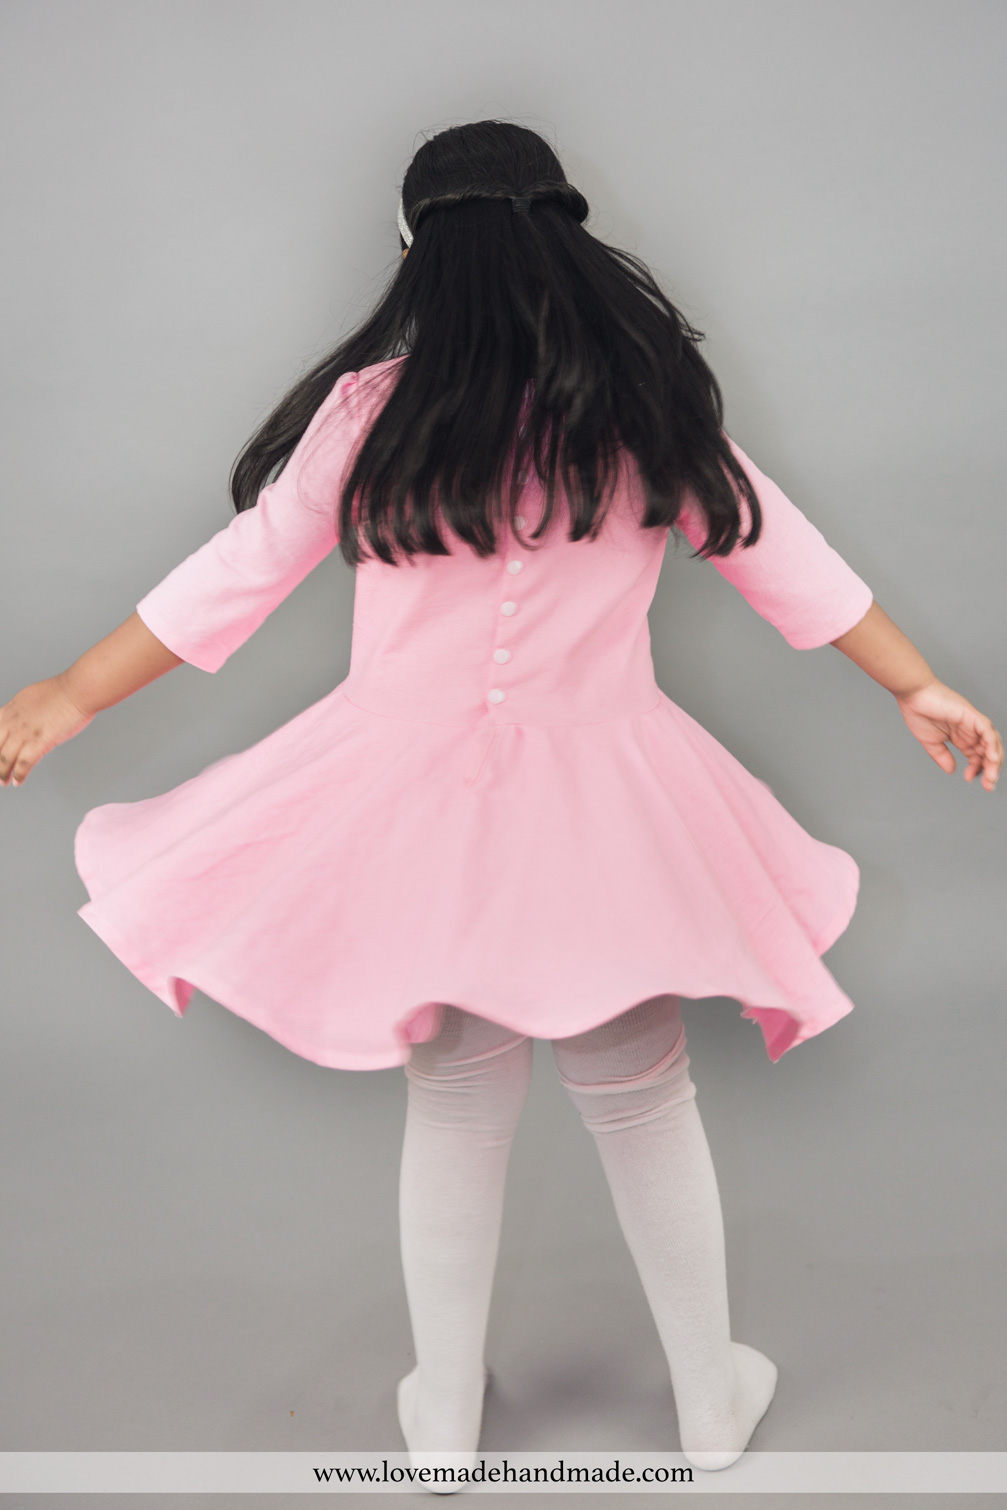 Handmade Birthday Dresses for the Thankful Sewing Blog Tour